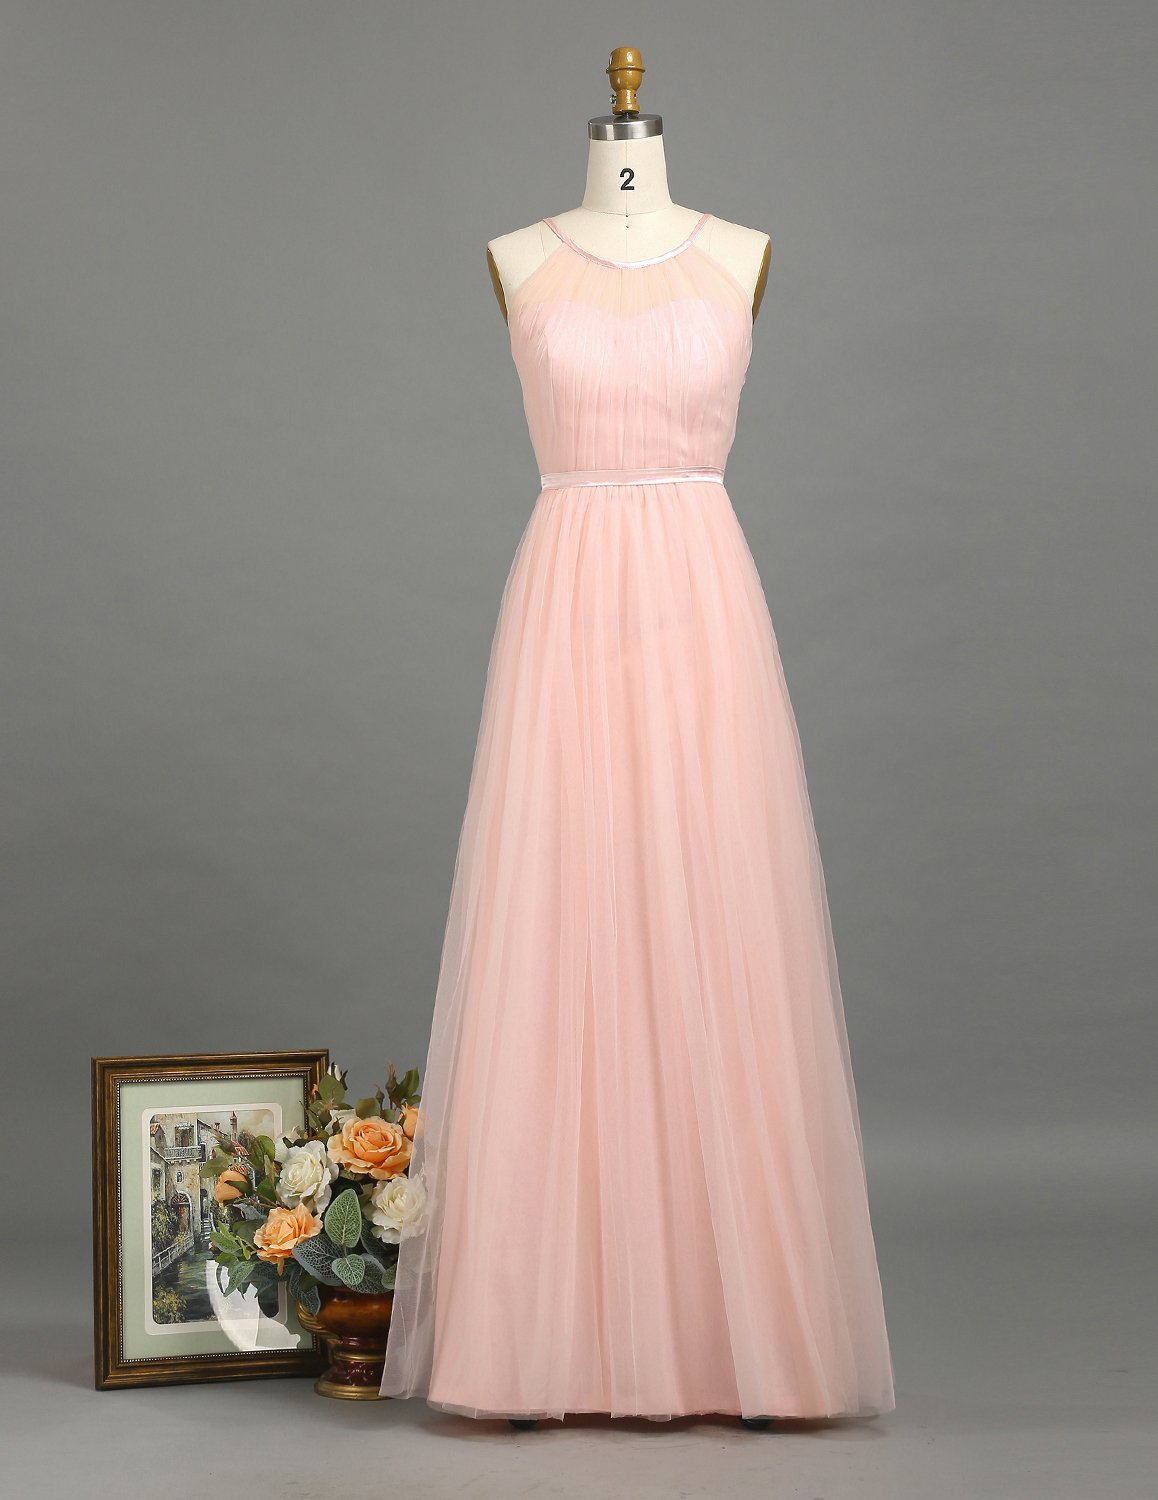 e27bc6784 ☆Note:this blush dress can be made in Any color of your choice.  ━━━━━━━○ITEM INFORMATION○━━━━━━━━━━━━ MATERIAL : Chiffon COLOR ...